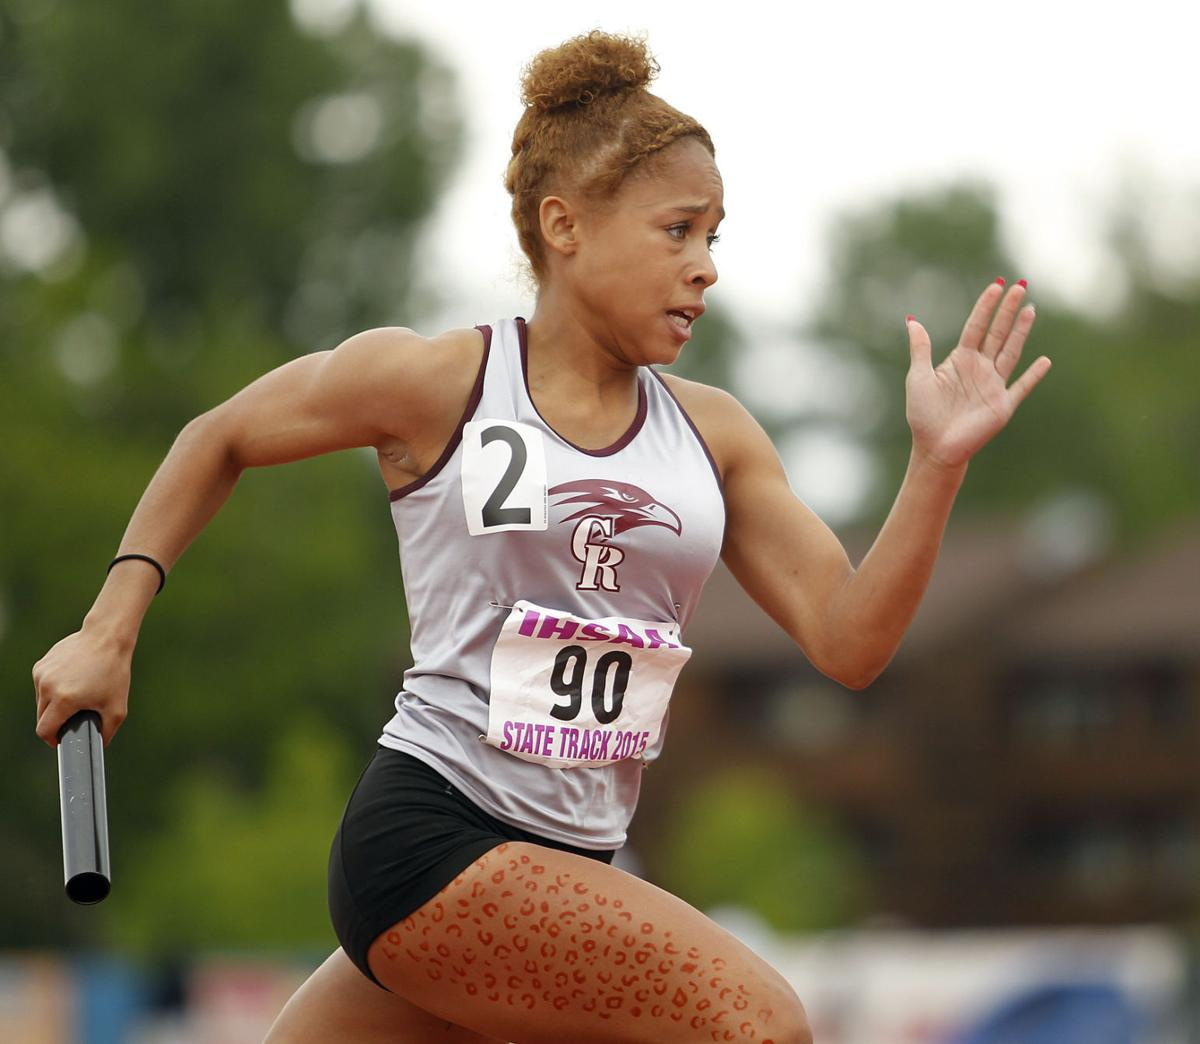 State Track and Field Championships